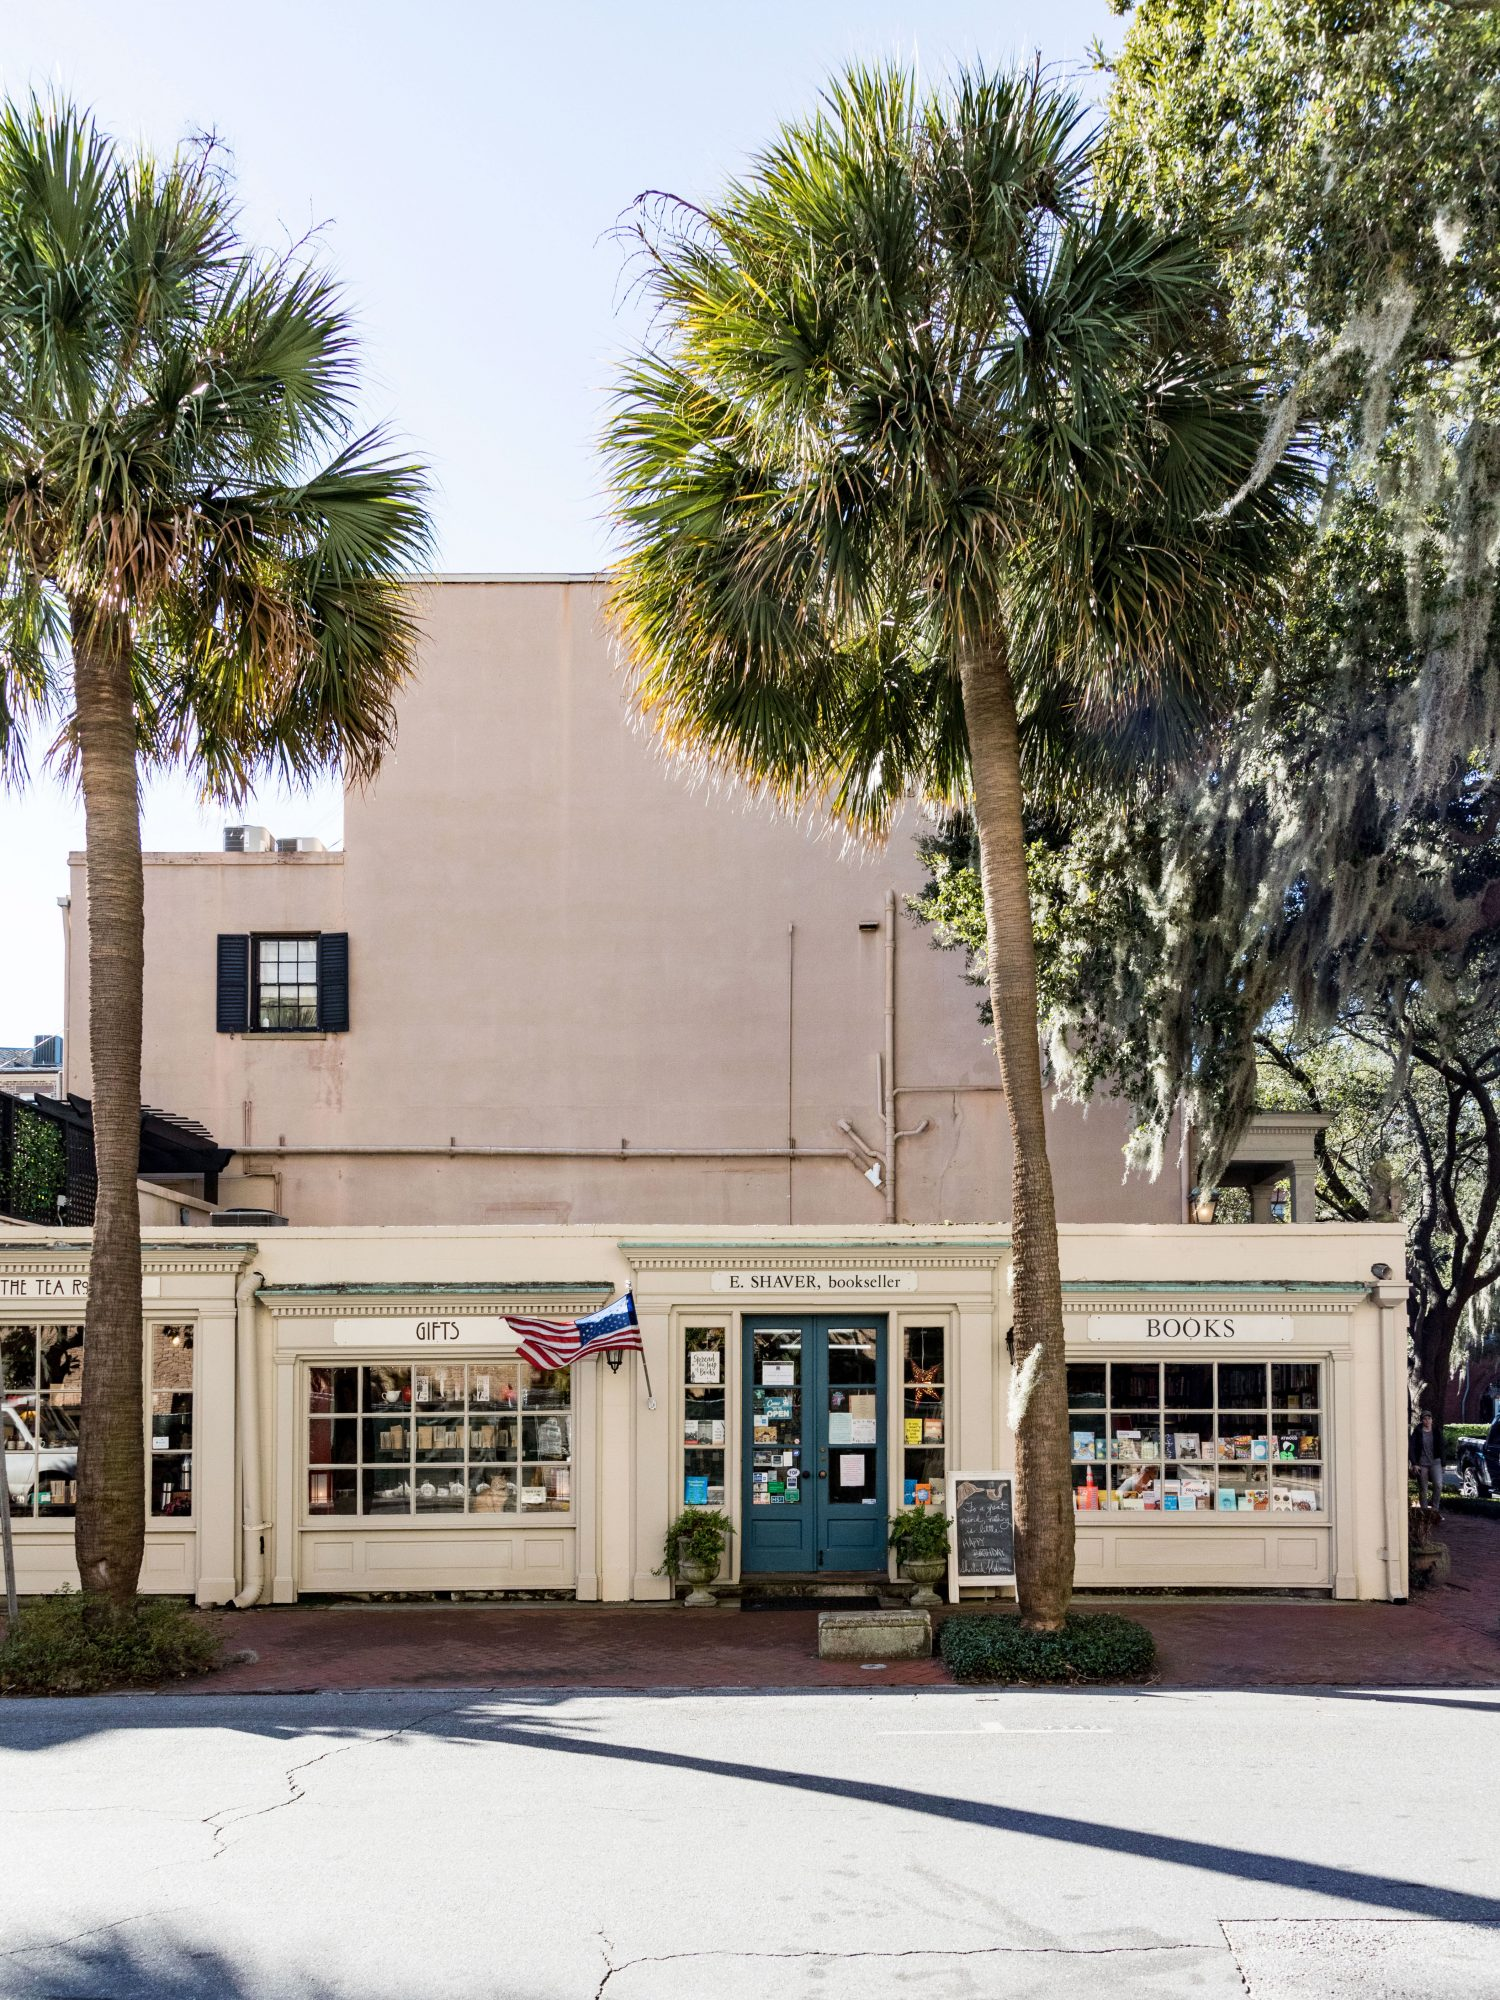 1. E. Shaver, Bookseller (Savannah, Georgia)